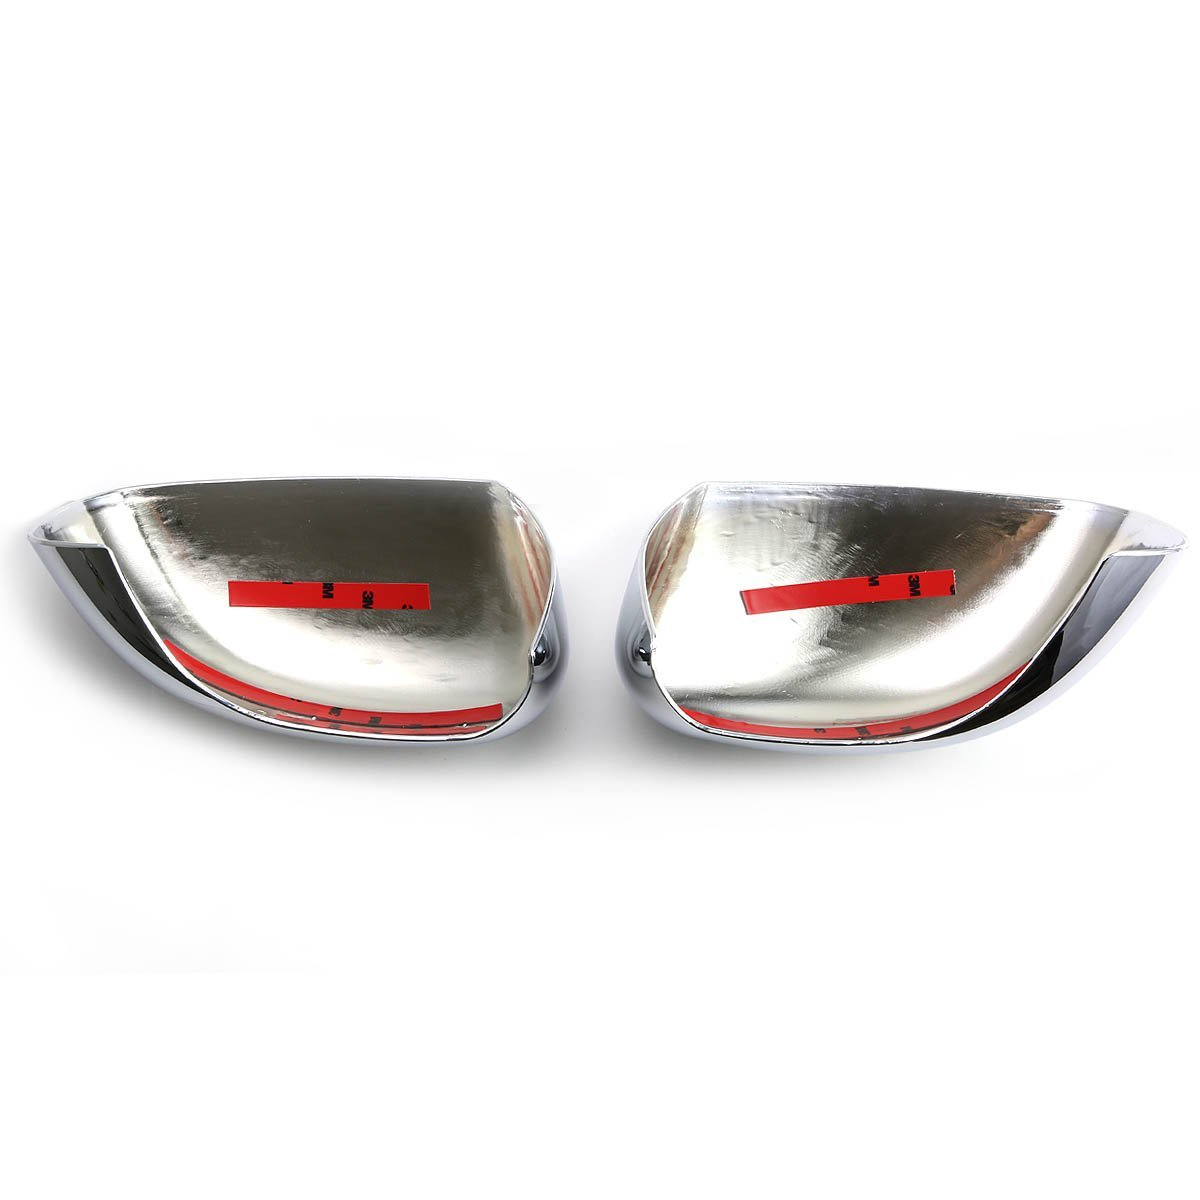 2005-2010 Chrysler 300 300C Magnum Charger Mirror Covers Chrome